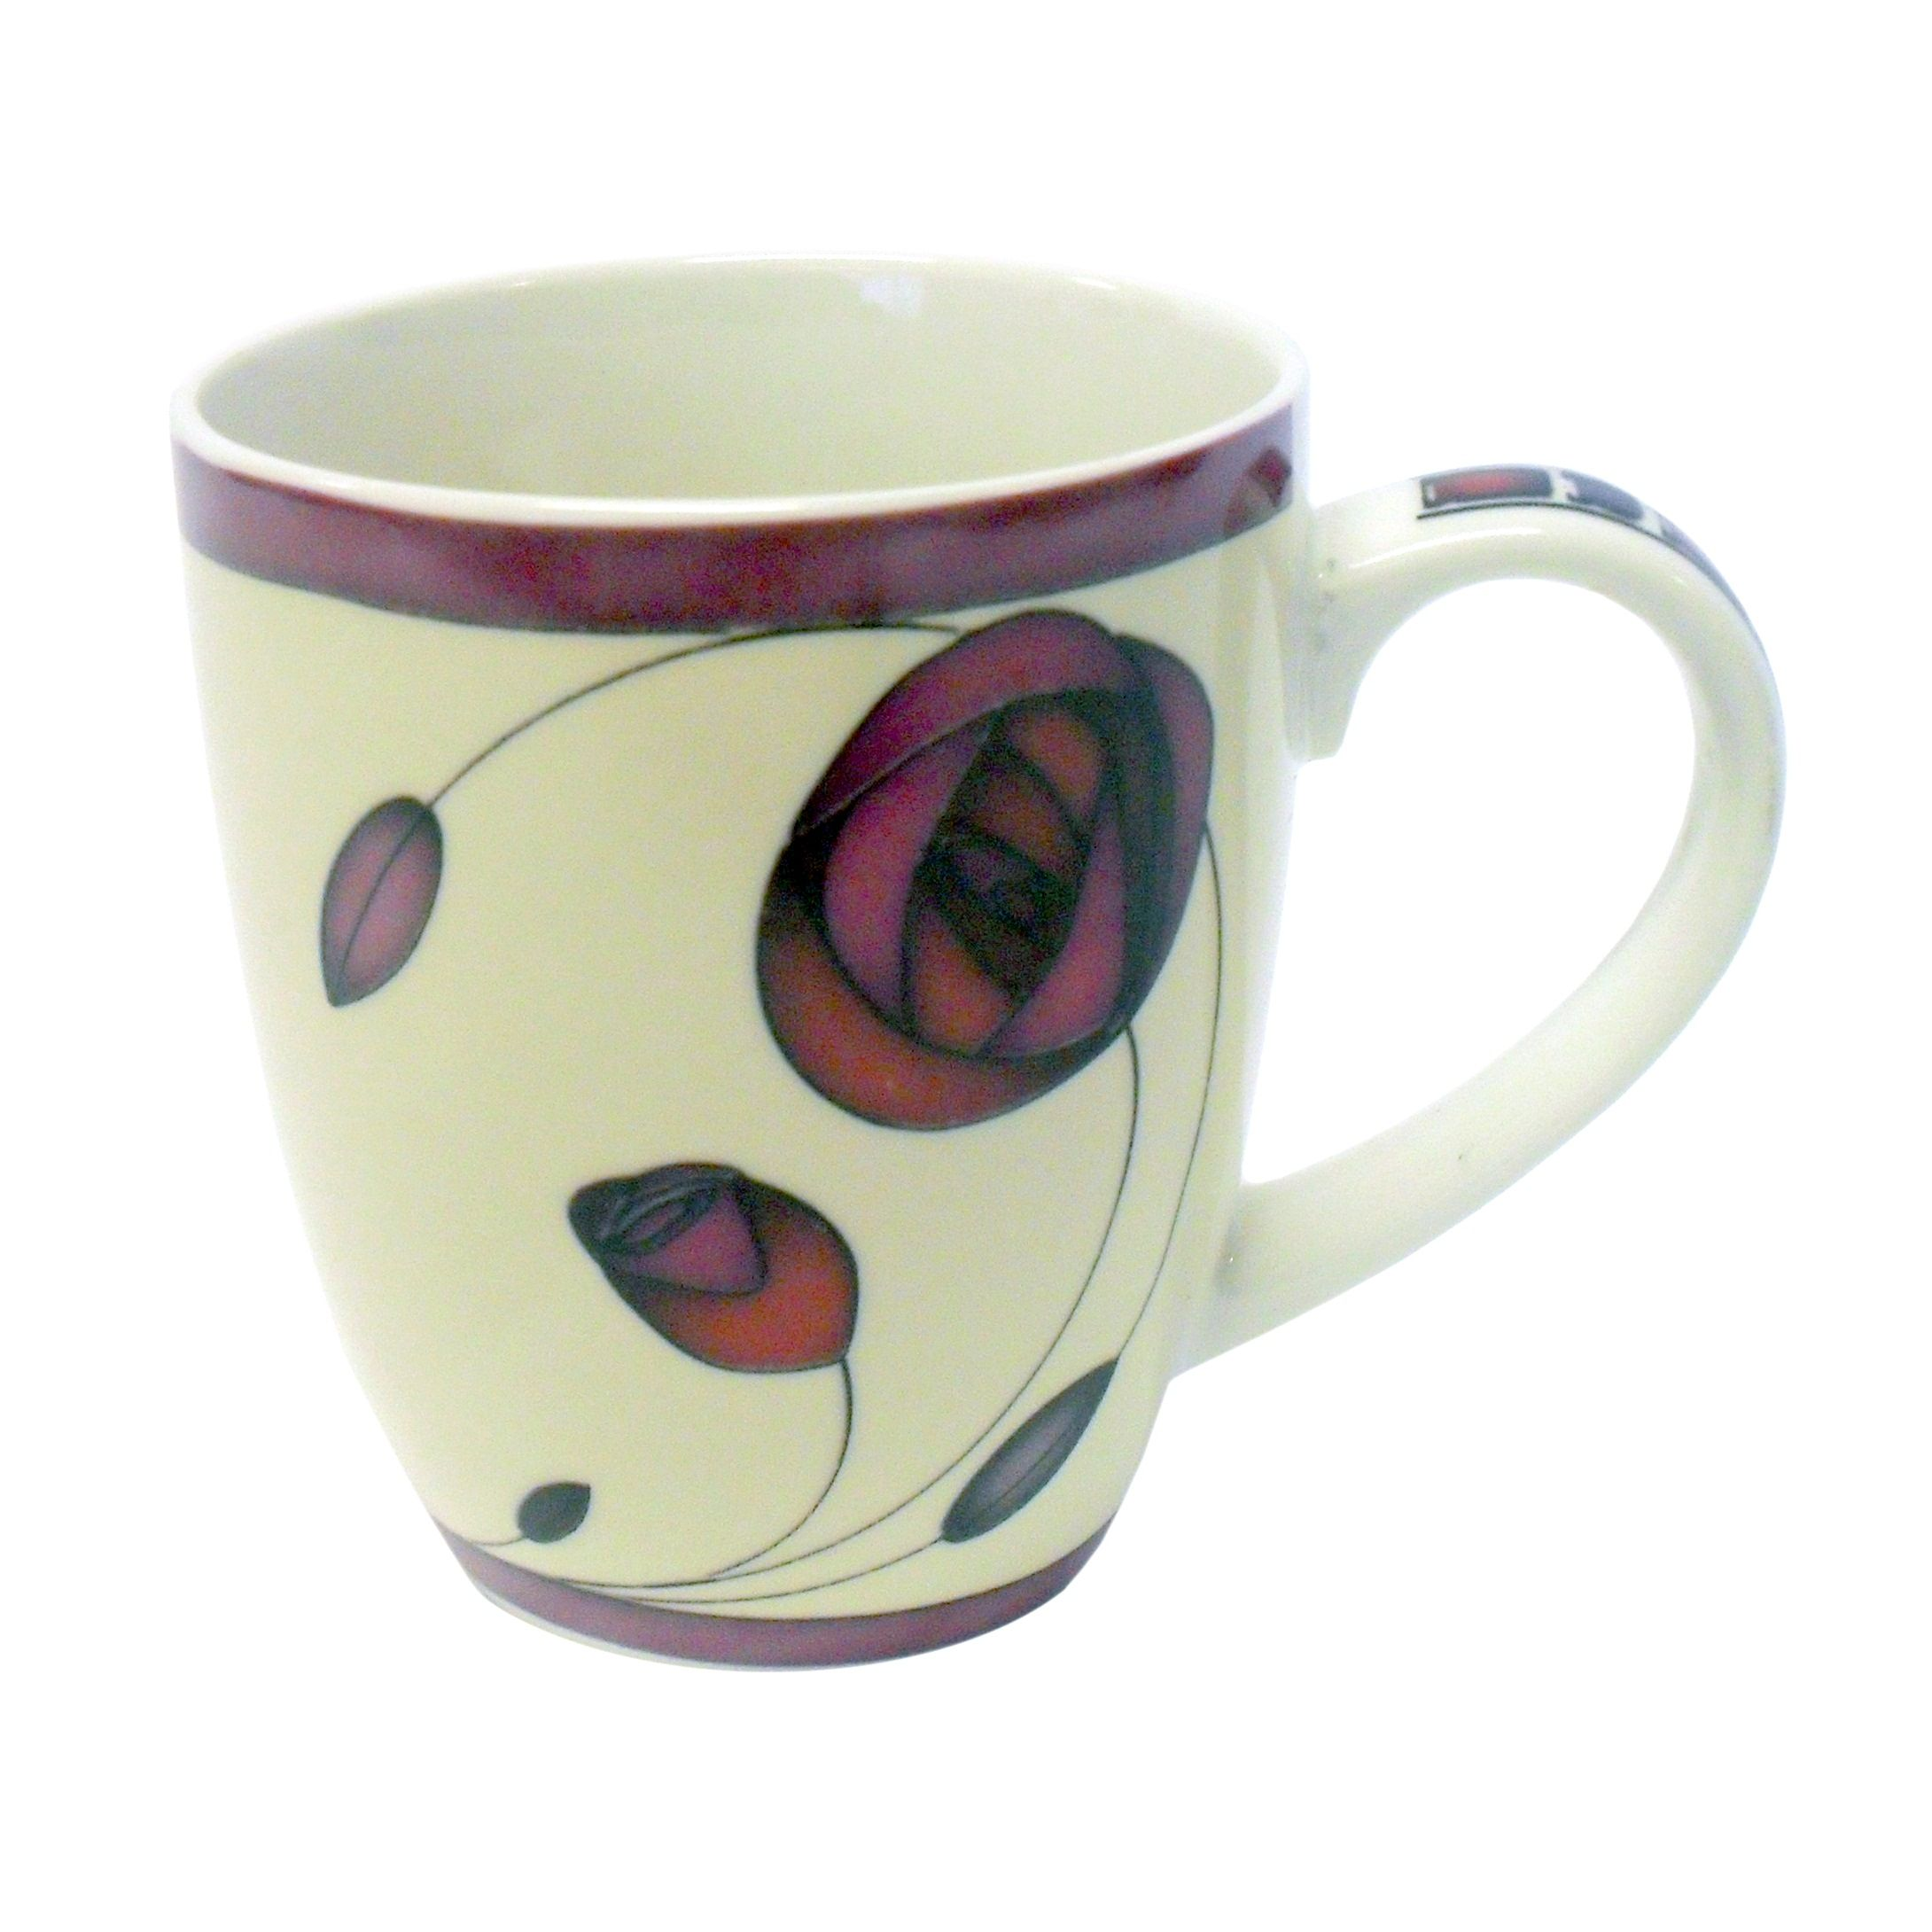 Charles-Rennie-Mackintosh -Rose-Plum-Bone-China-Mug-I-Style-My-Home-Tradestock-43809-p.jpg